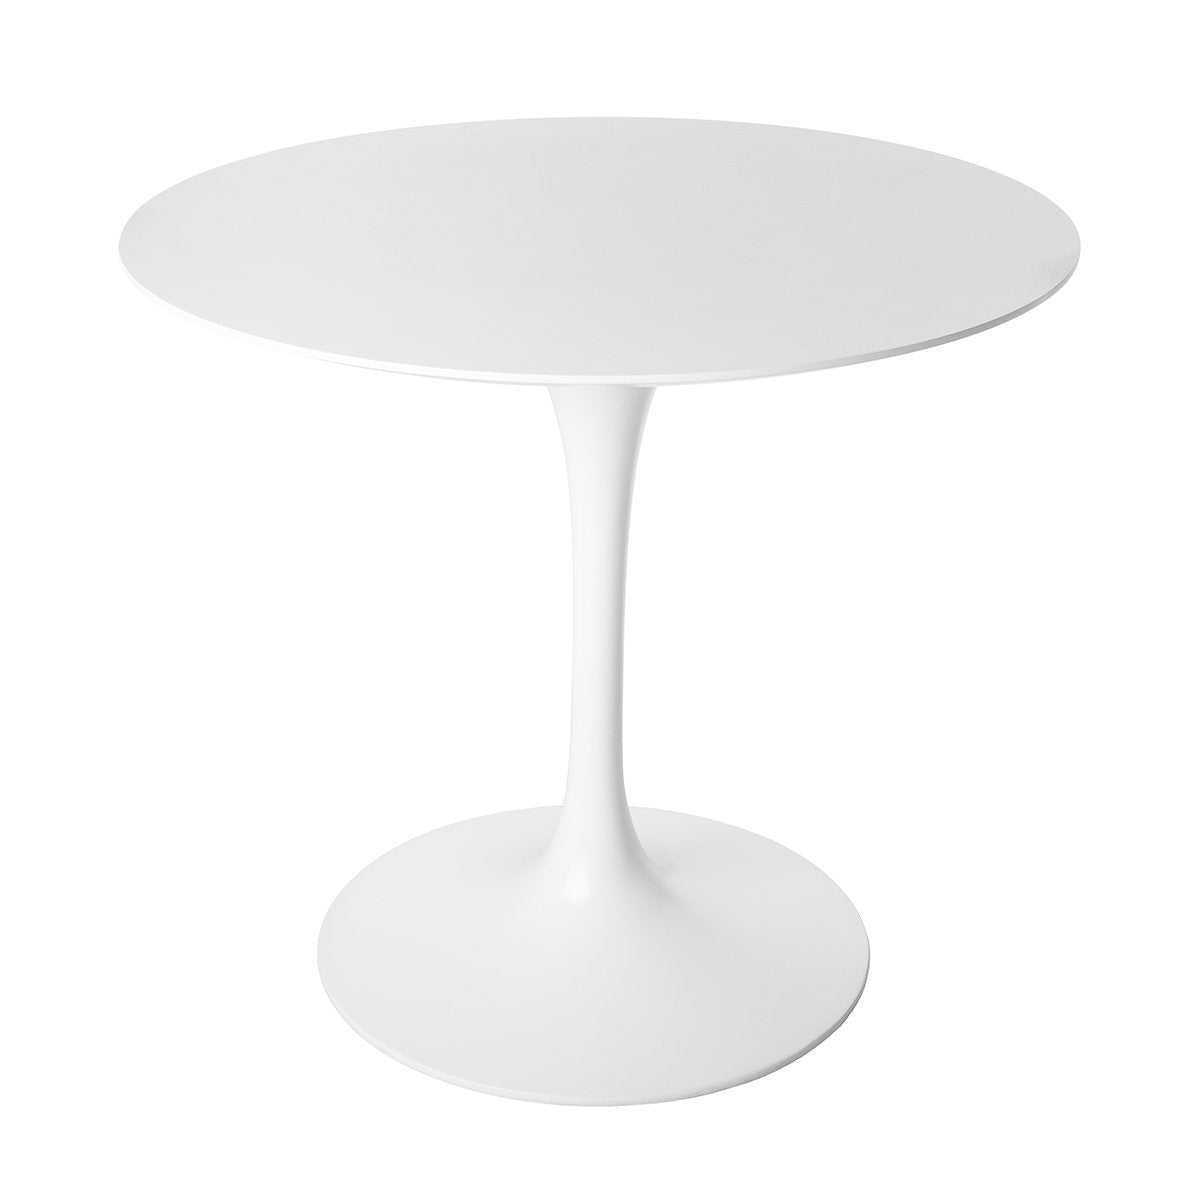 "[FET4137WHTHPL] Tulip Dining Table - 35.5"" Round"